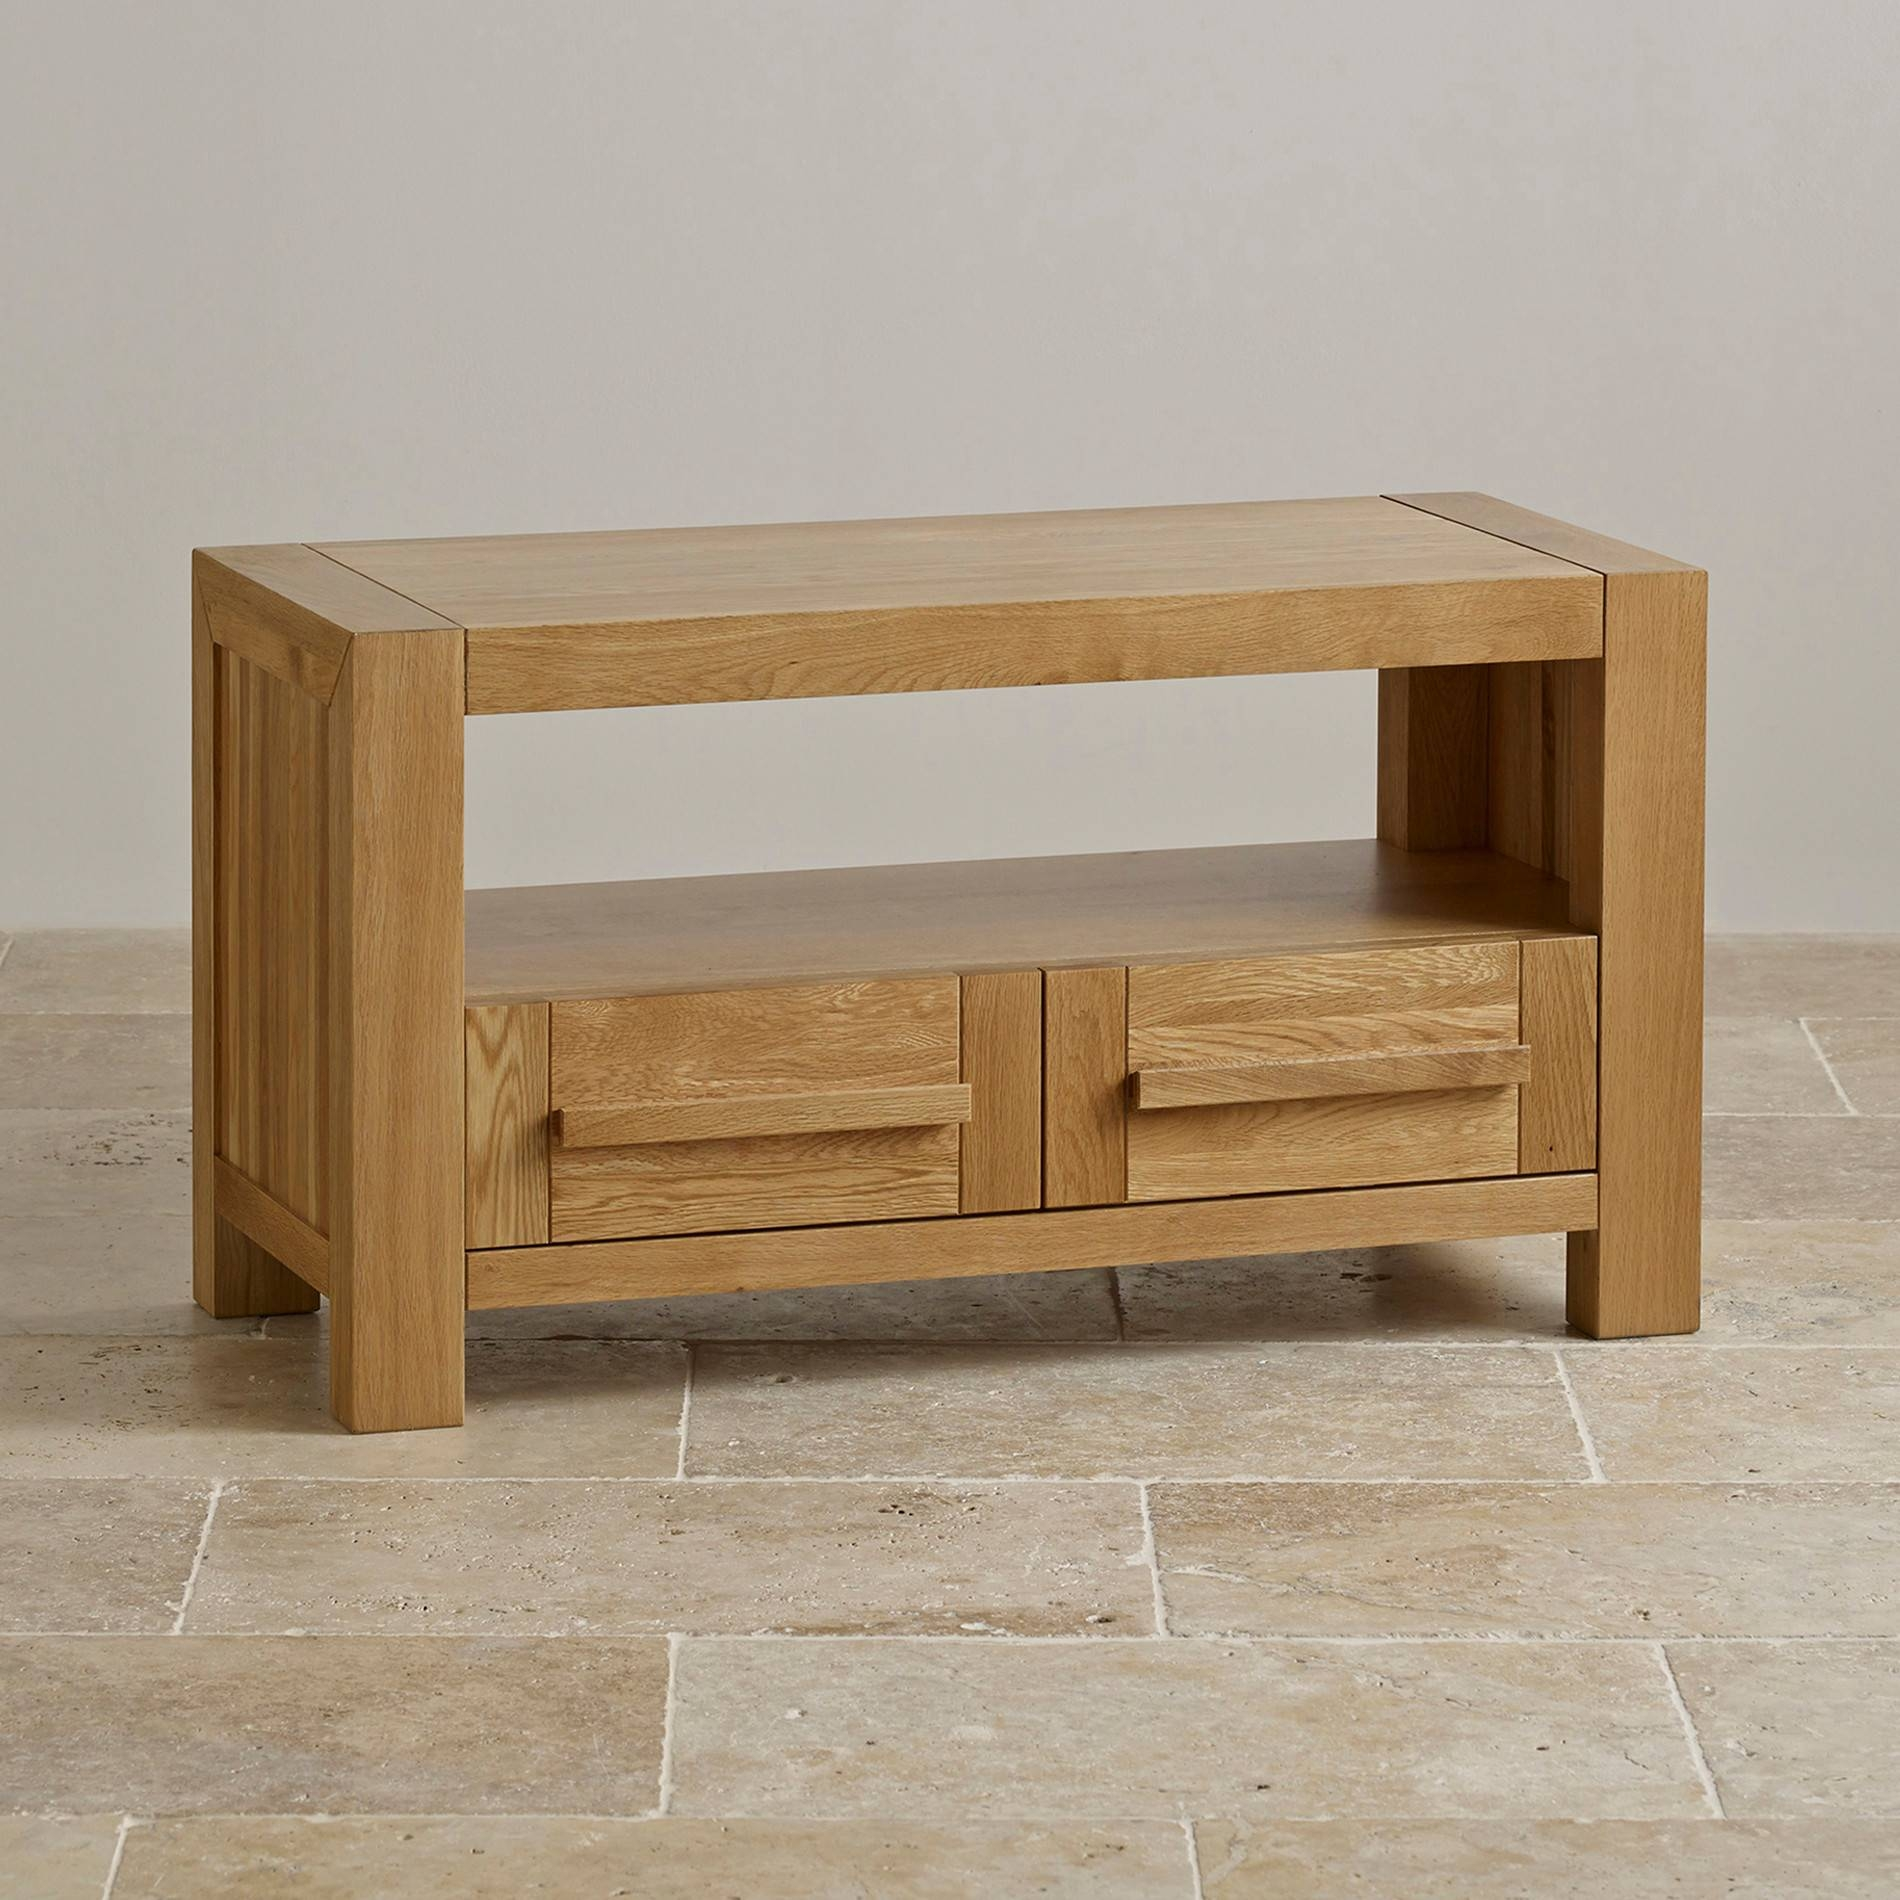 Fresco 2 Drawer Tv Cabinet In Solid Oak | Oak Furniture Land In Tv Cabinets (View 14 of 15)